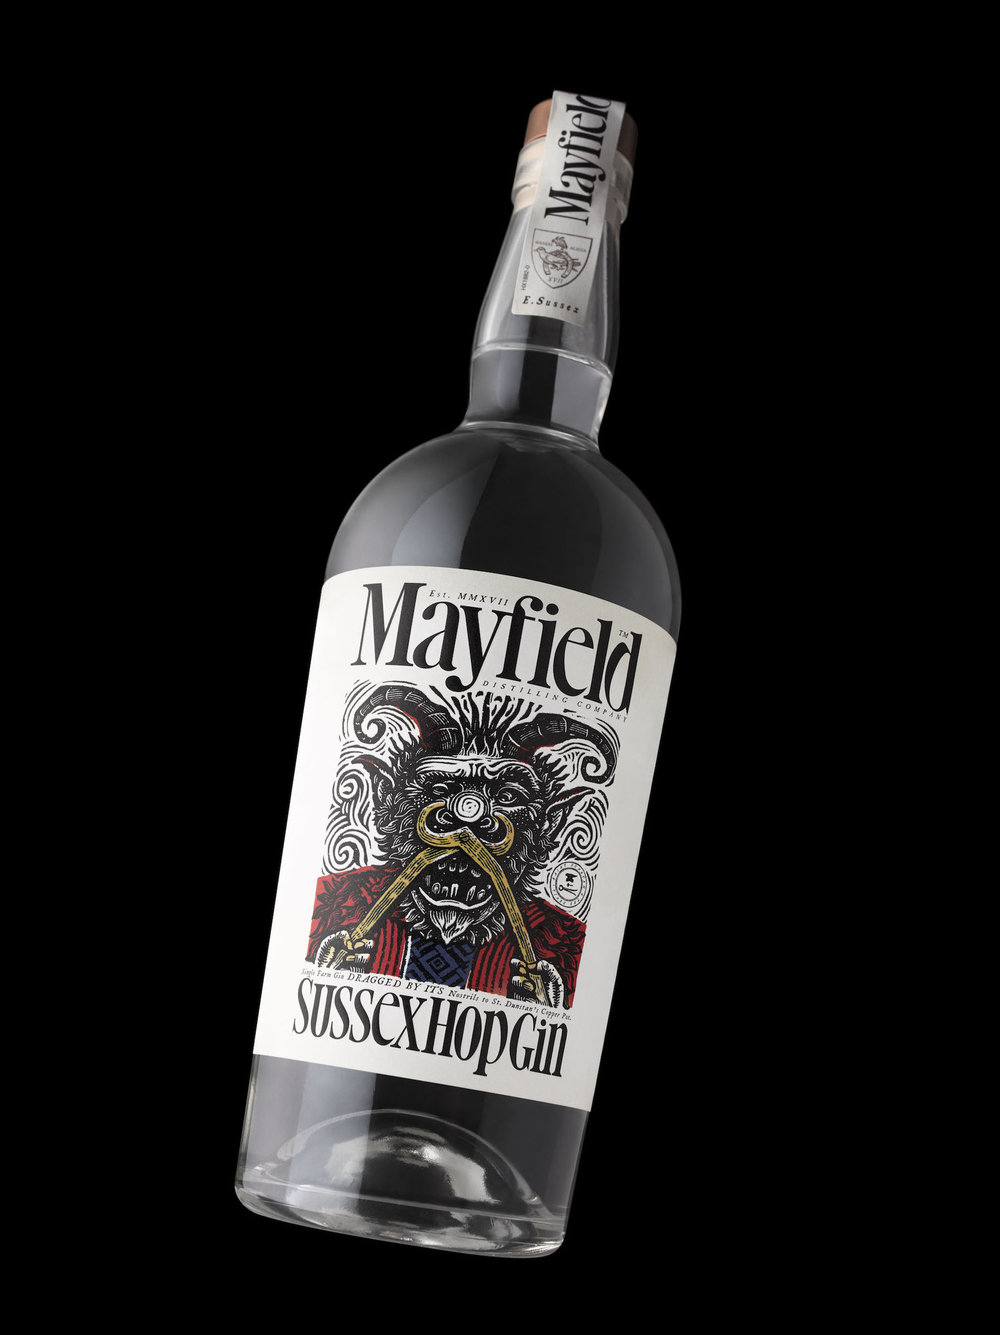 Mayfield_Gin_Angled_bottle_on_black.jpg